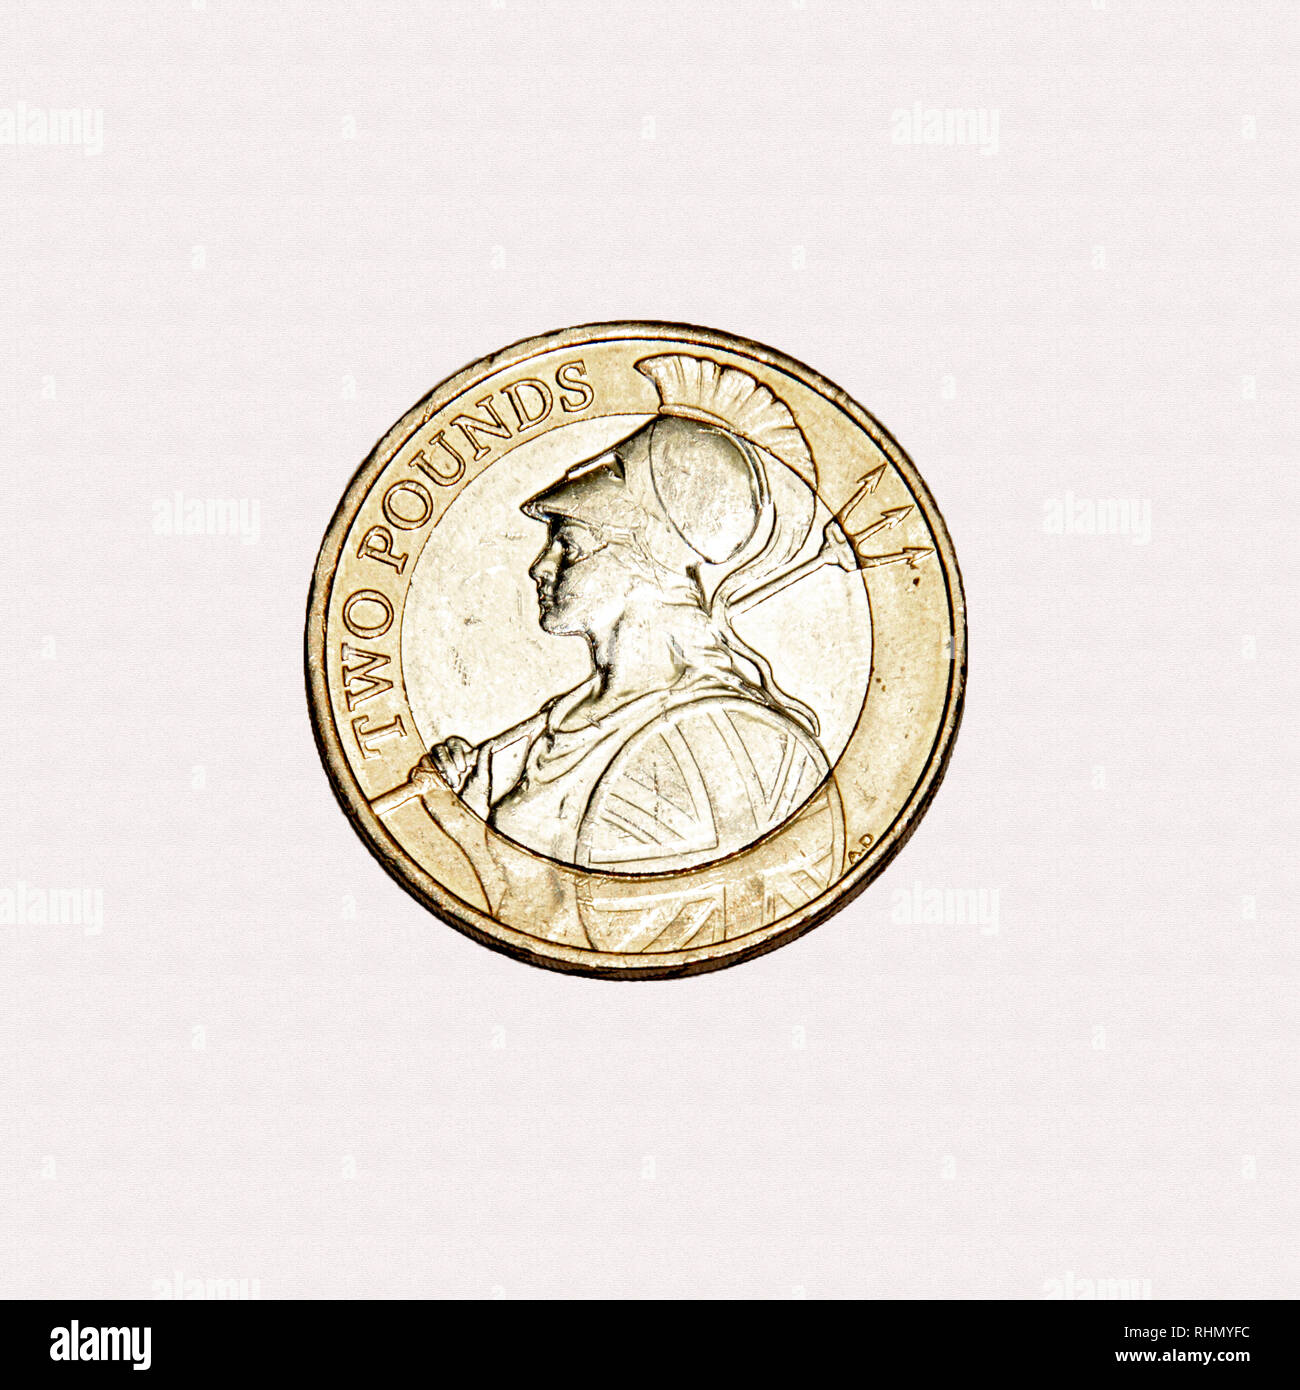 British £2 coin with the return of the image of Britannia to British coinage - Stock Image